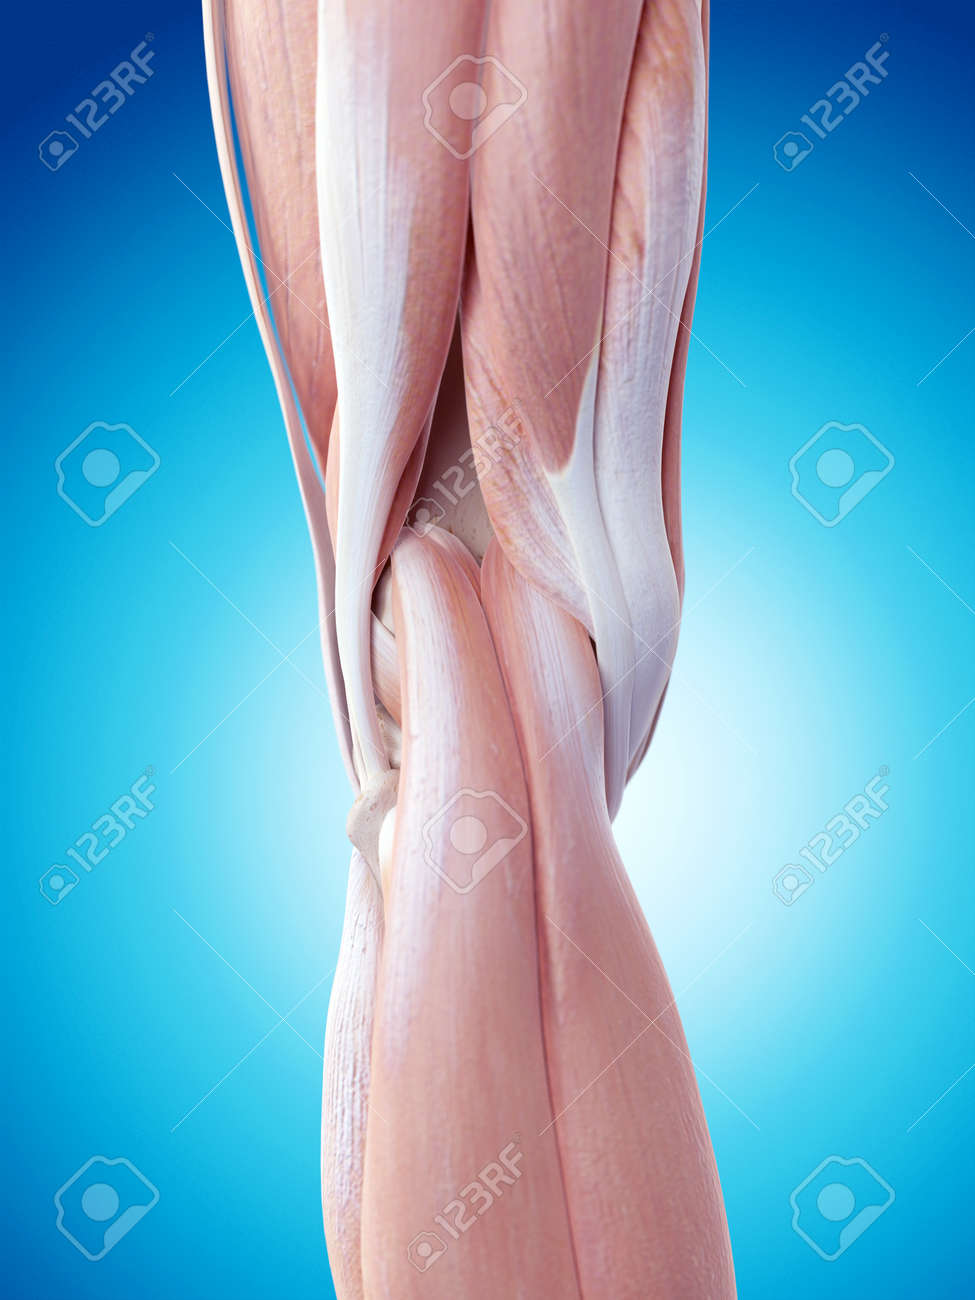 Medically Accurate Illustration Of The Knee Anatomy Stock Photo